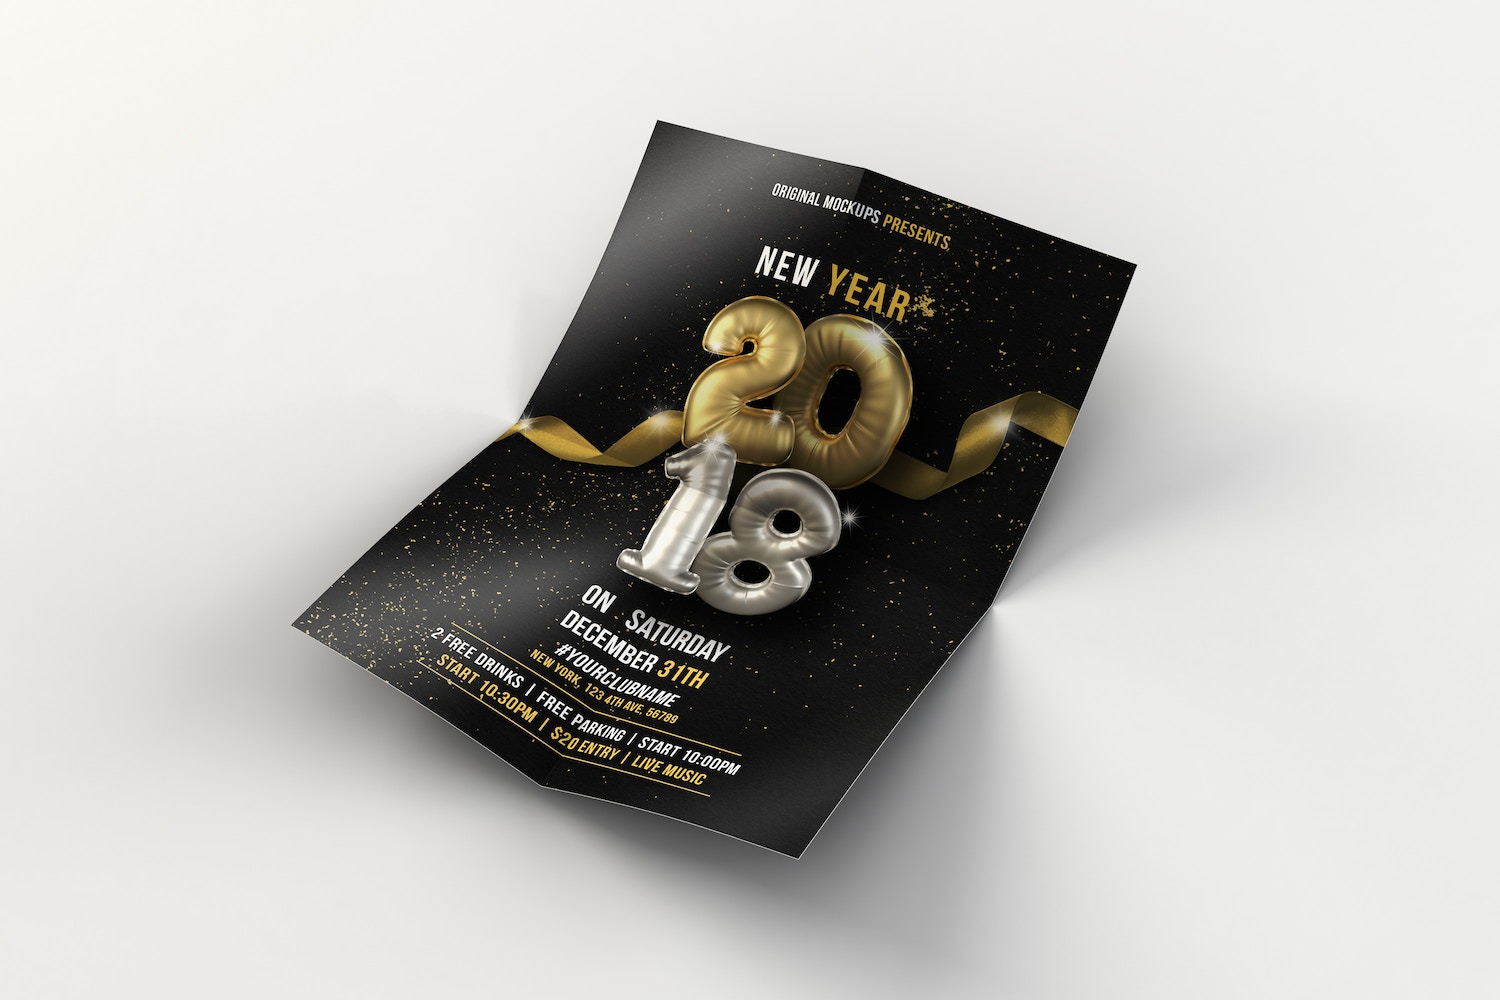 New Year Flyer - Poster 01 by Original Mockups on Original Mockups